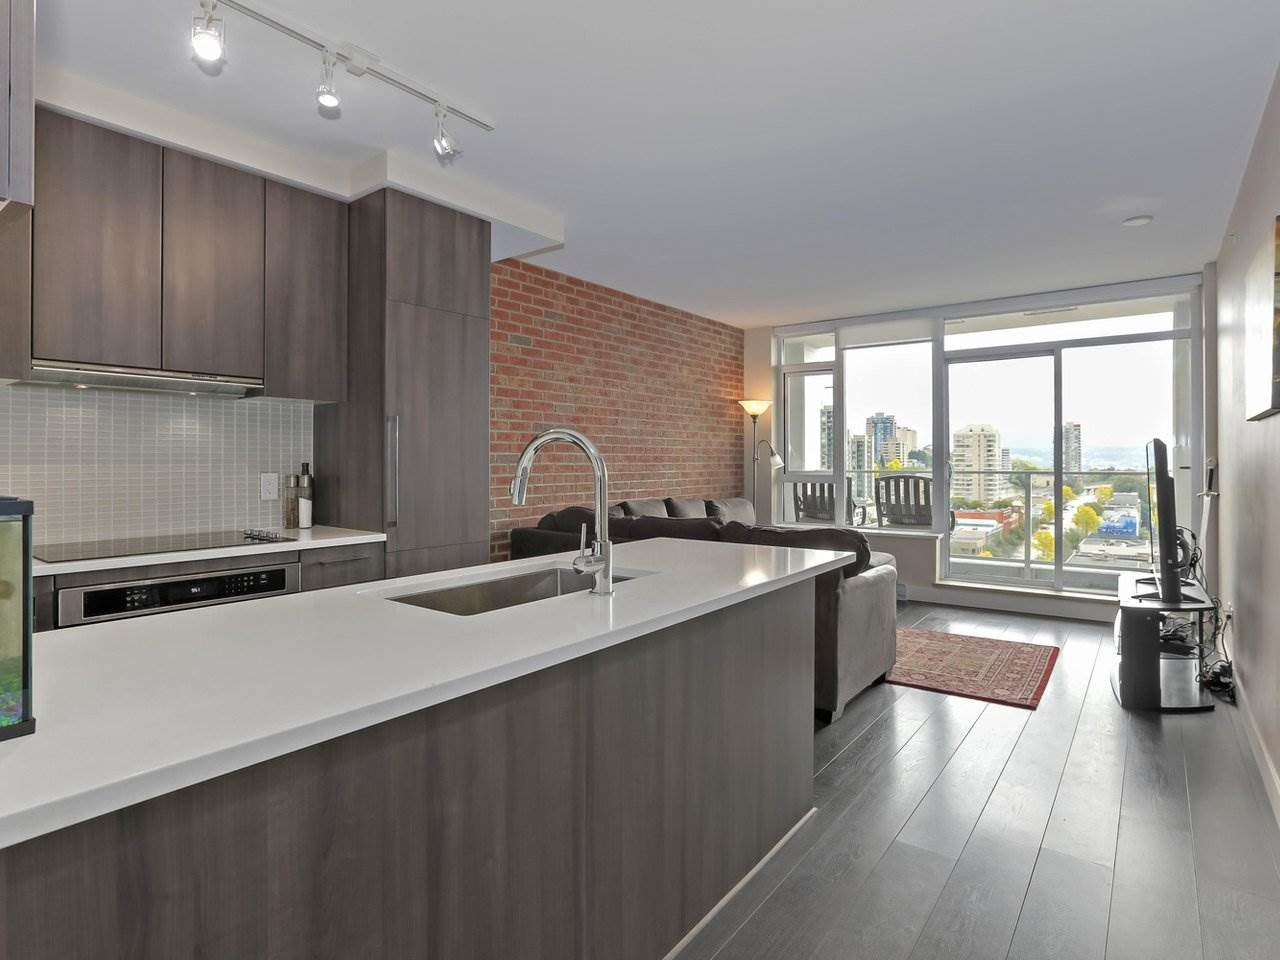 """Main Photo: 1908 668 COLUMBIA Street in New Westminster: Quay Condo for sale in """"Trapp & Holbrook"""" : MLS®# R2378796"""